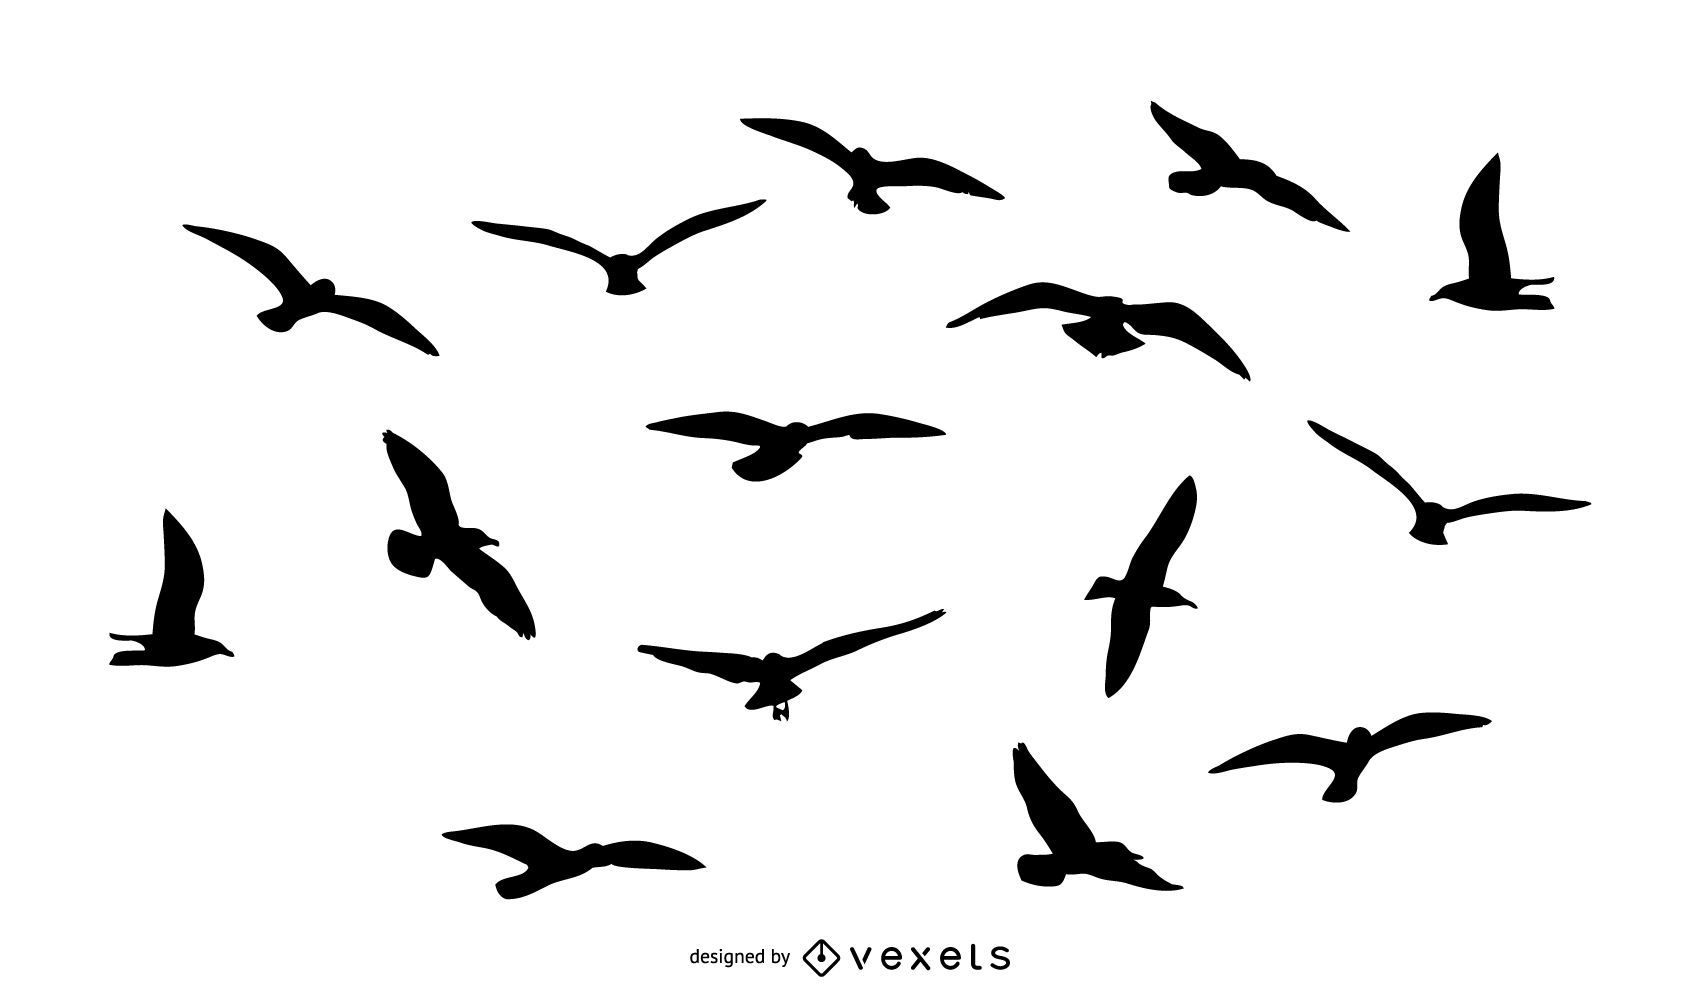 Birds flying silhouette pack - Vector download